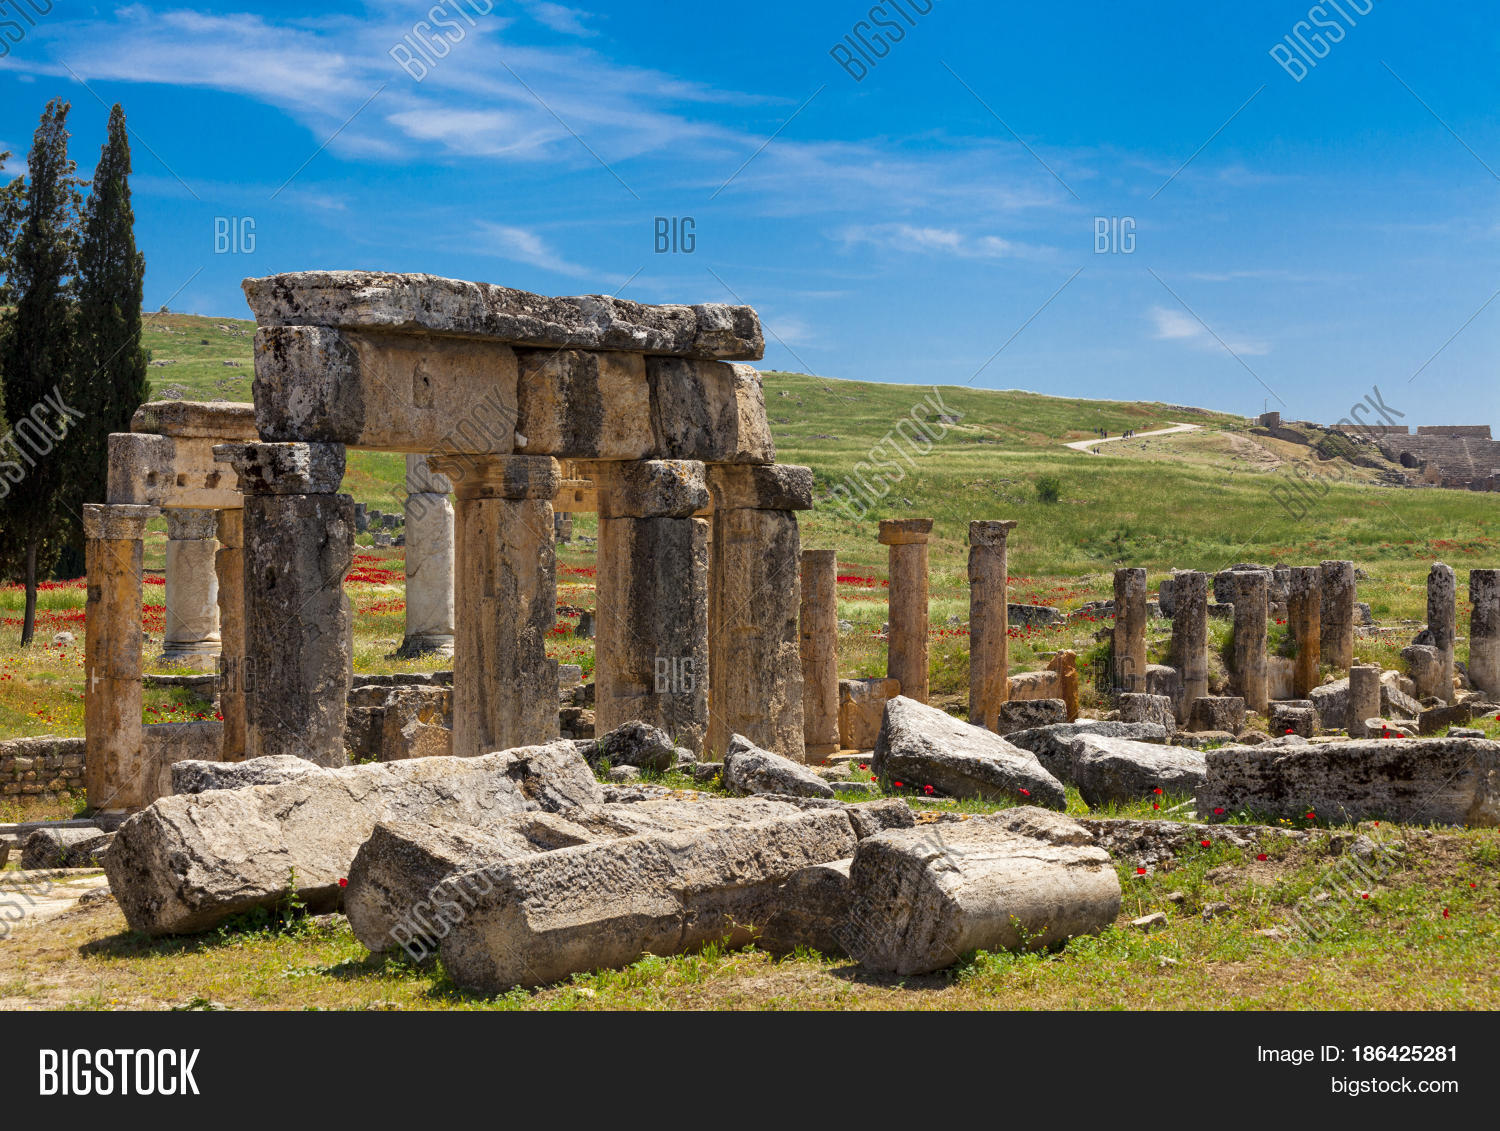 Elements Wall Ruined Image & Photo (Free Trial) | Bigstock